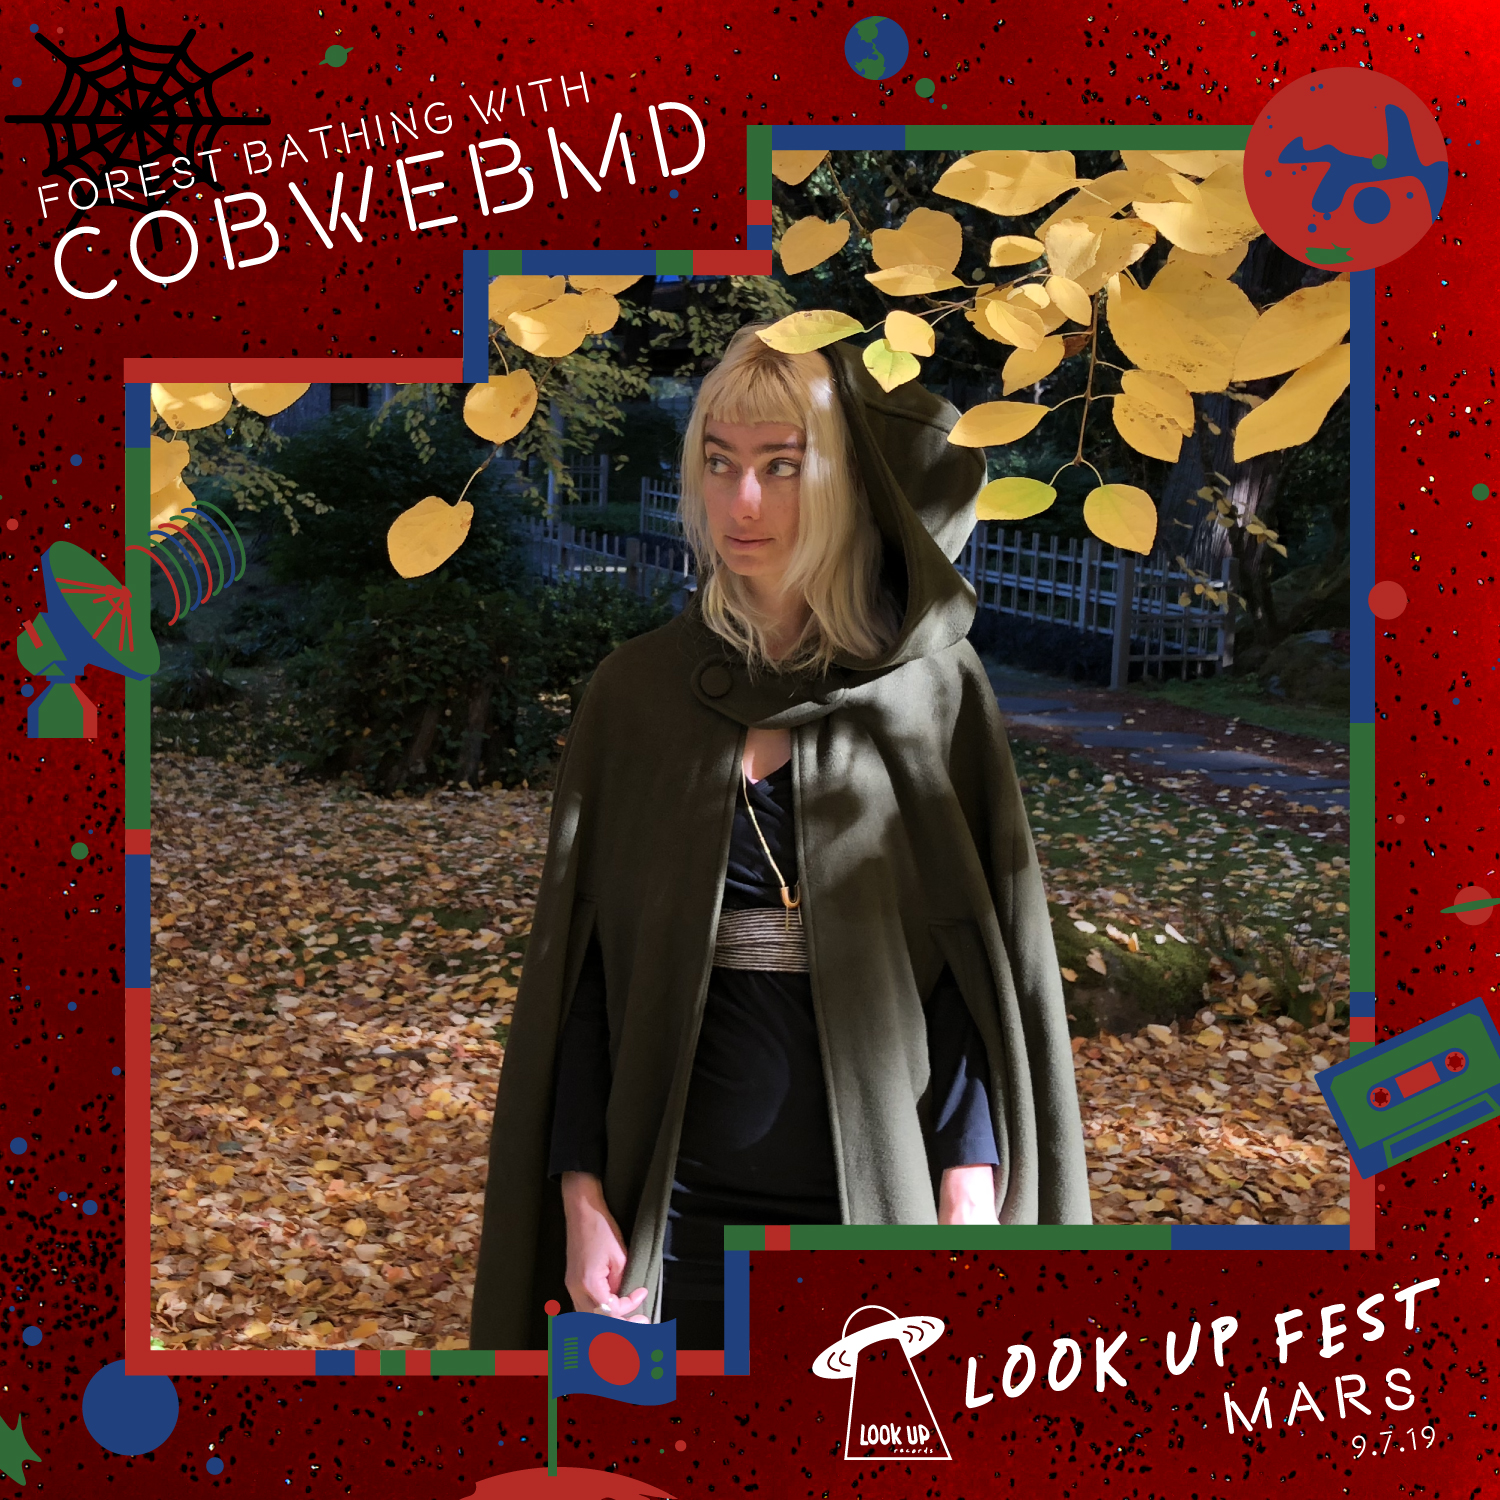 COBWEBMD - At Look Up Fest: Mars, the good witch CobwebMD will offer free guided forest bathing sessions in a little terraformed patch of the festival. CobwebMD is Emily Wittenhagen, a certified nutritionist and community herbalist based in Georgetown, Seattle, offering nutrition and herbal consultation, individual and group forest, sound & energy therapy sessions, and a network of local people recommended for body work and other forms of healing.